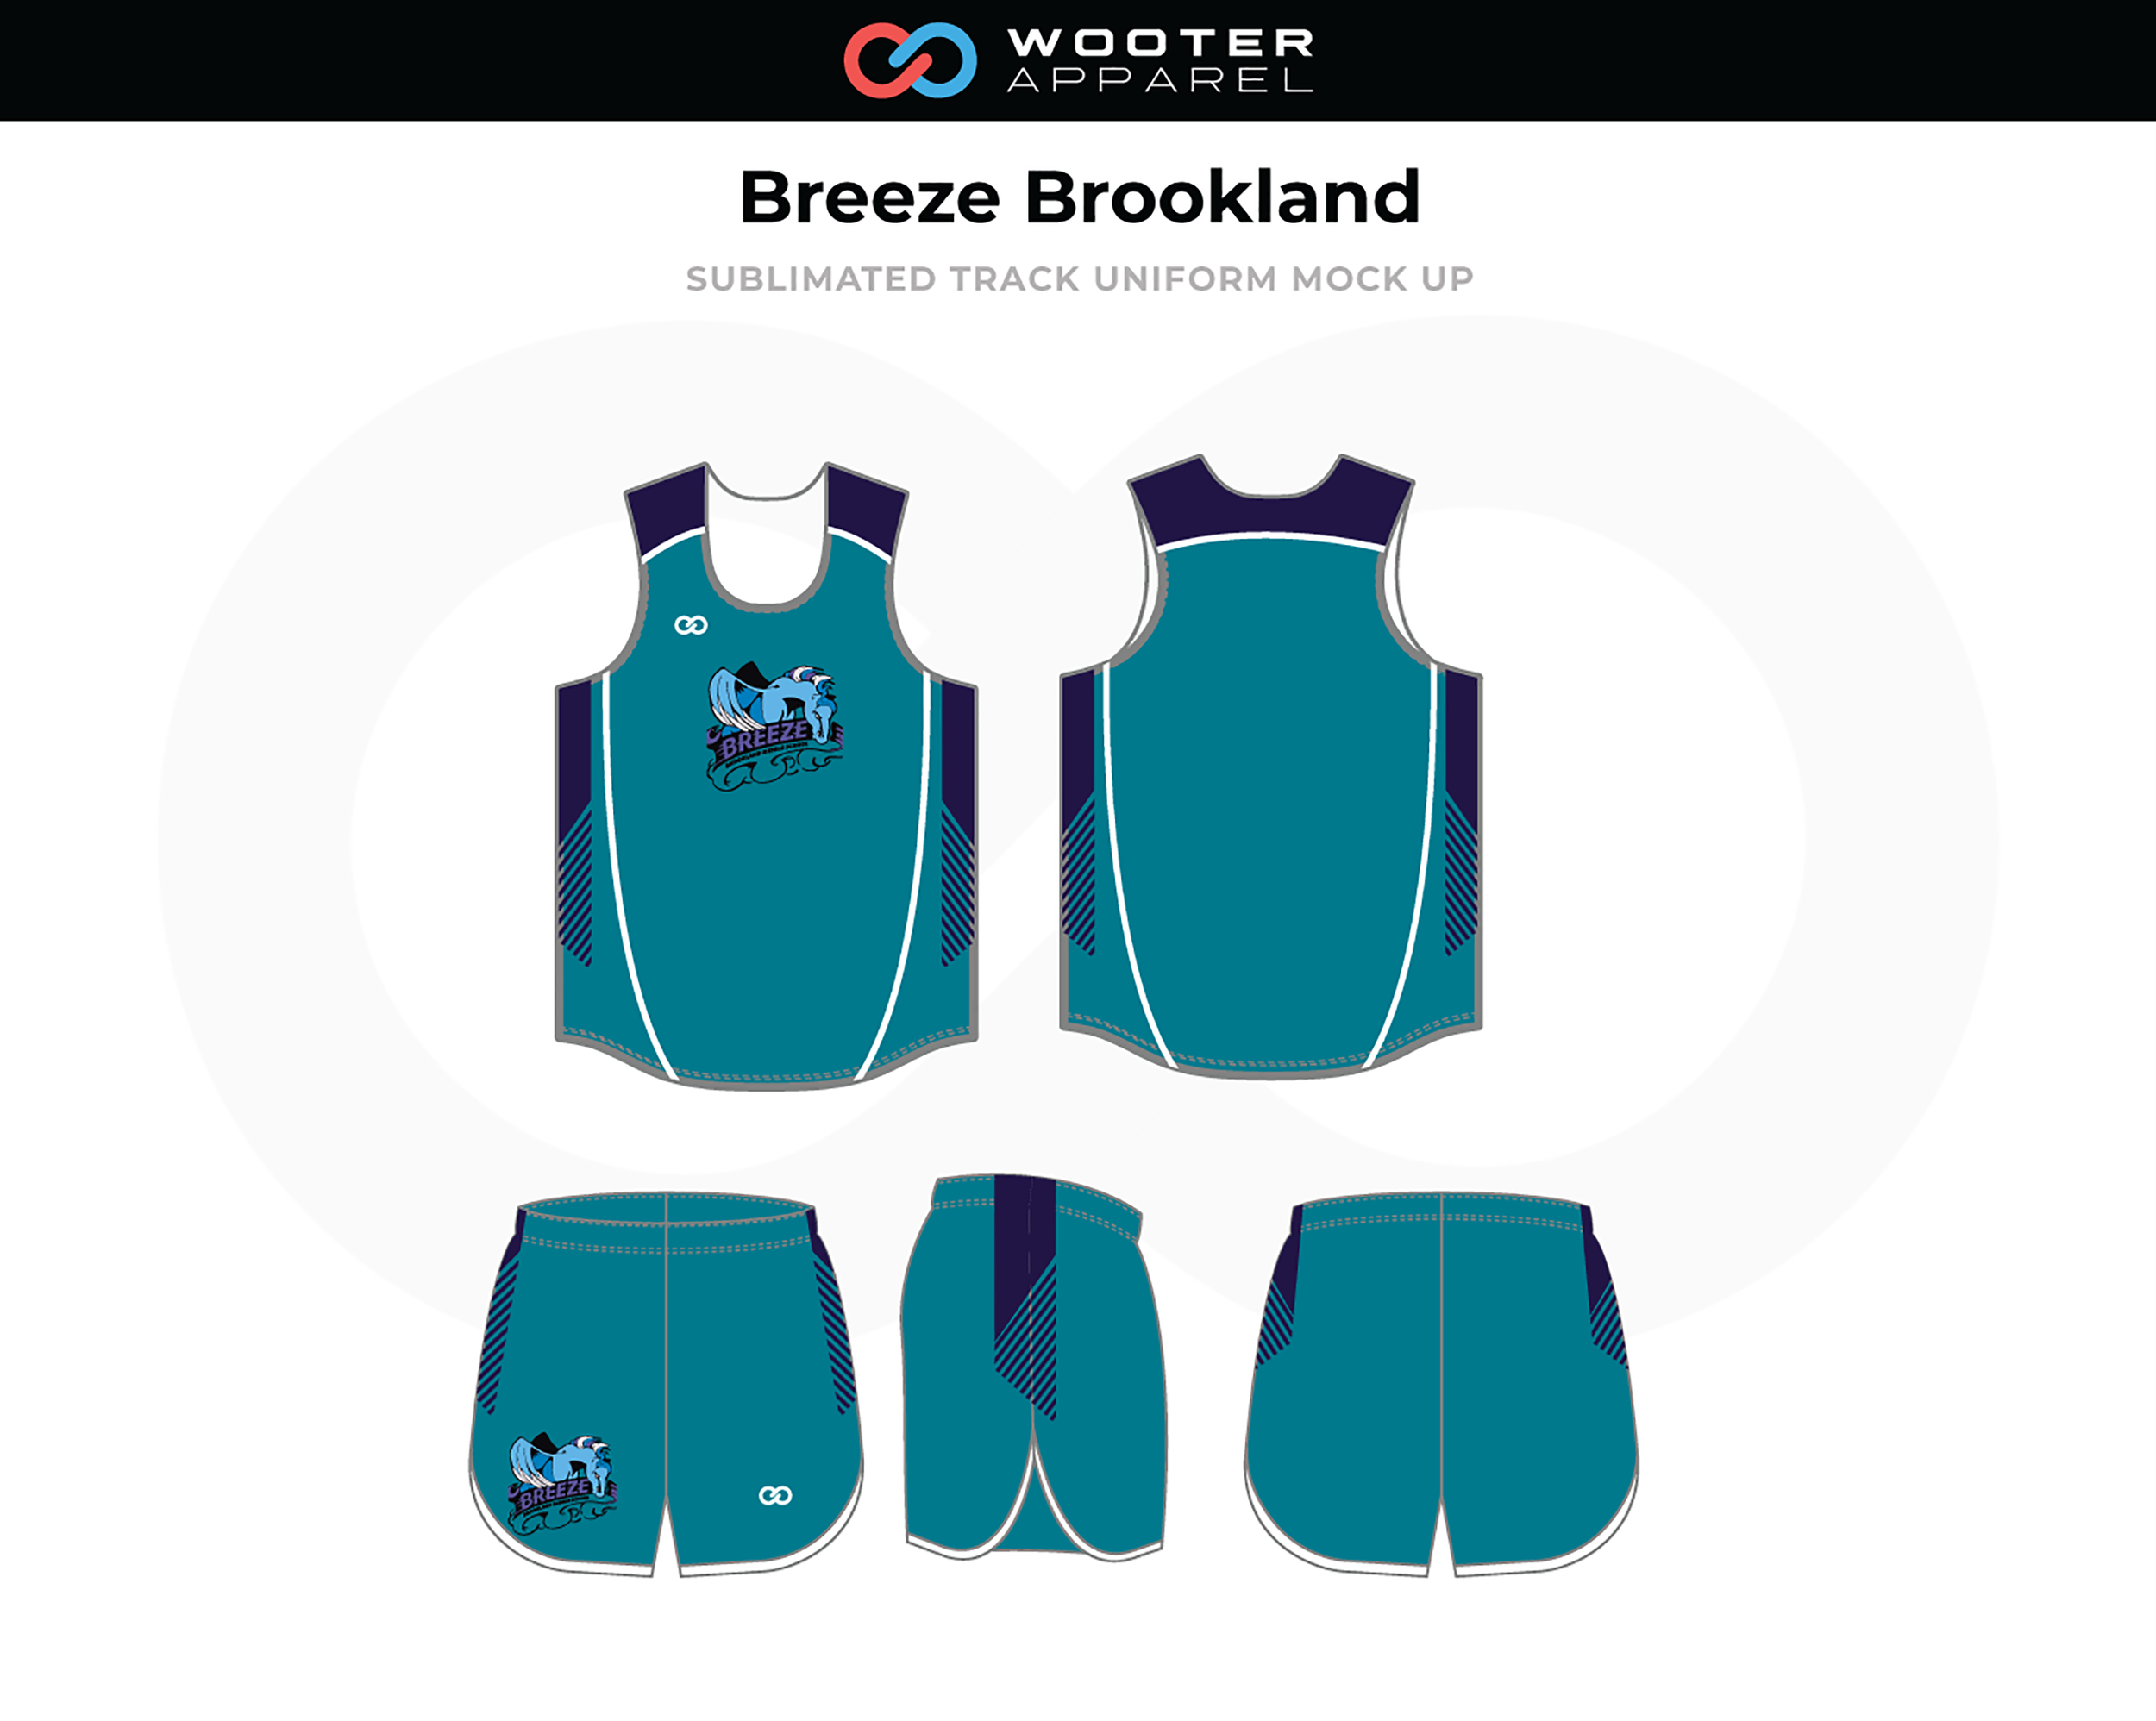 BREEZE BROOKLAND Ocean Blue White Navy Blue Track Uniforms, Jerseys, and Shorts